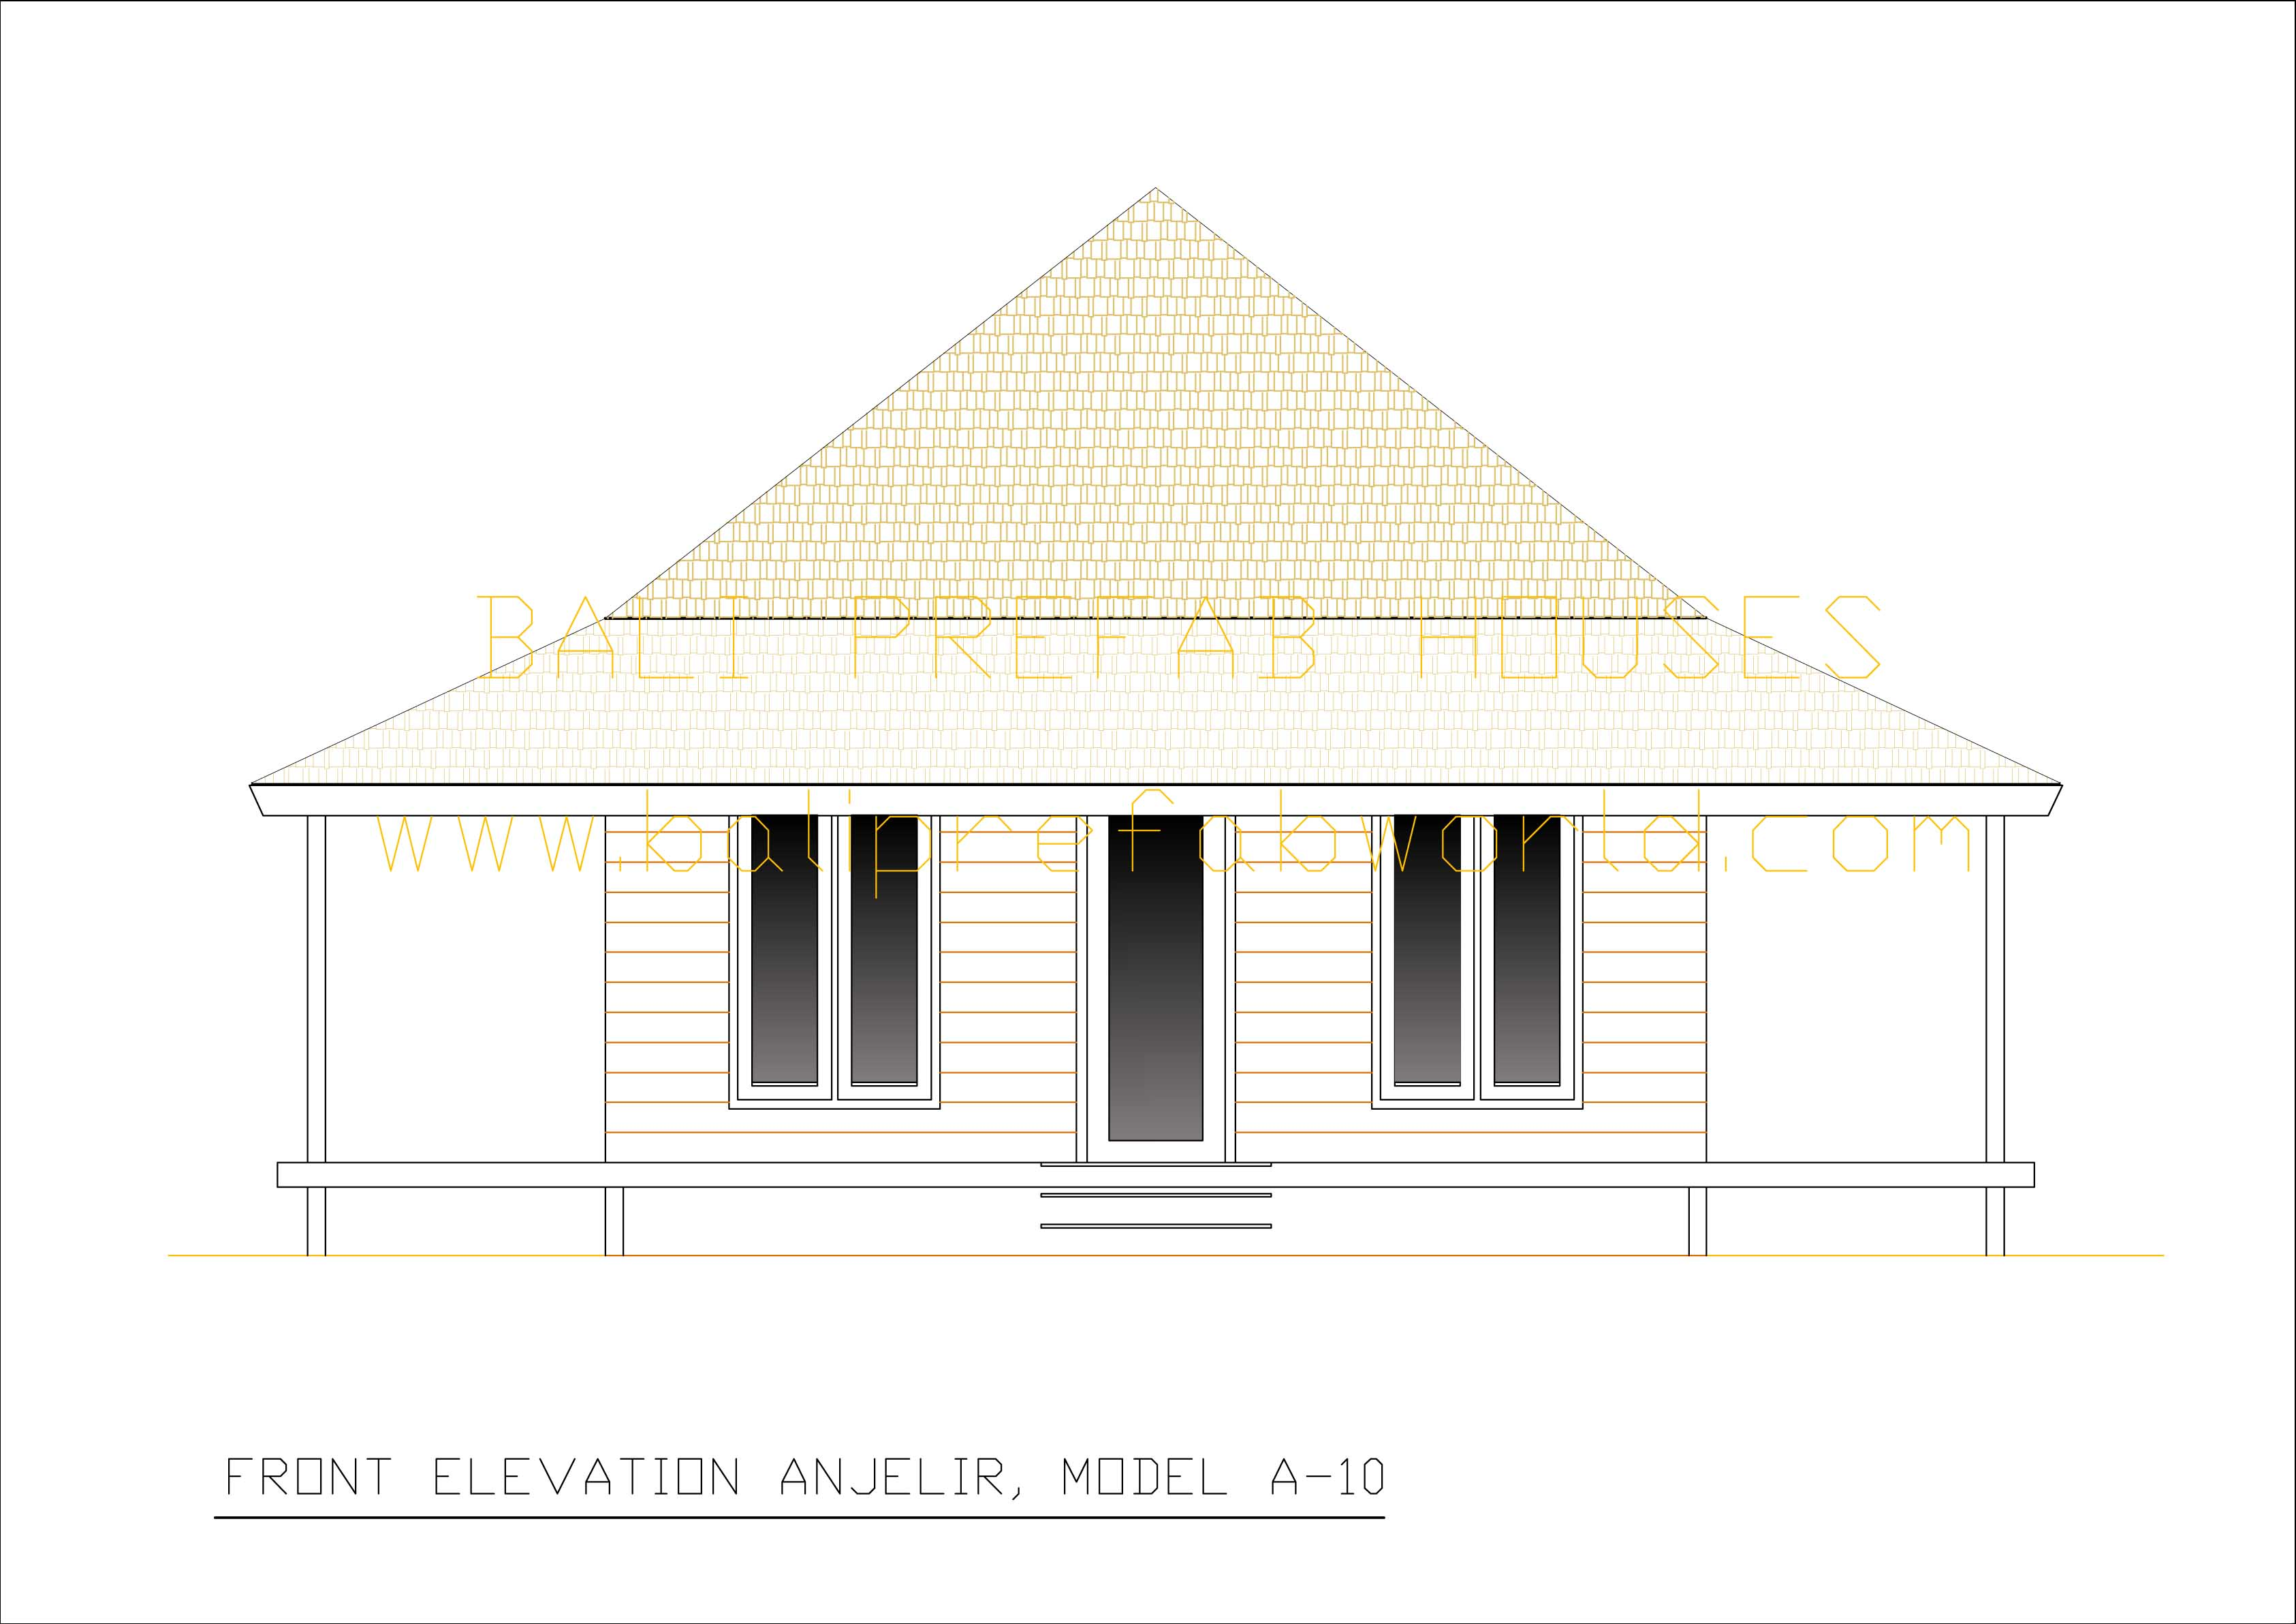 Anjelir front elevation